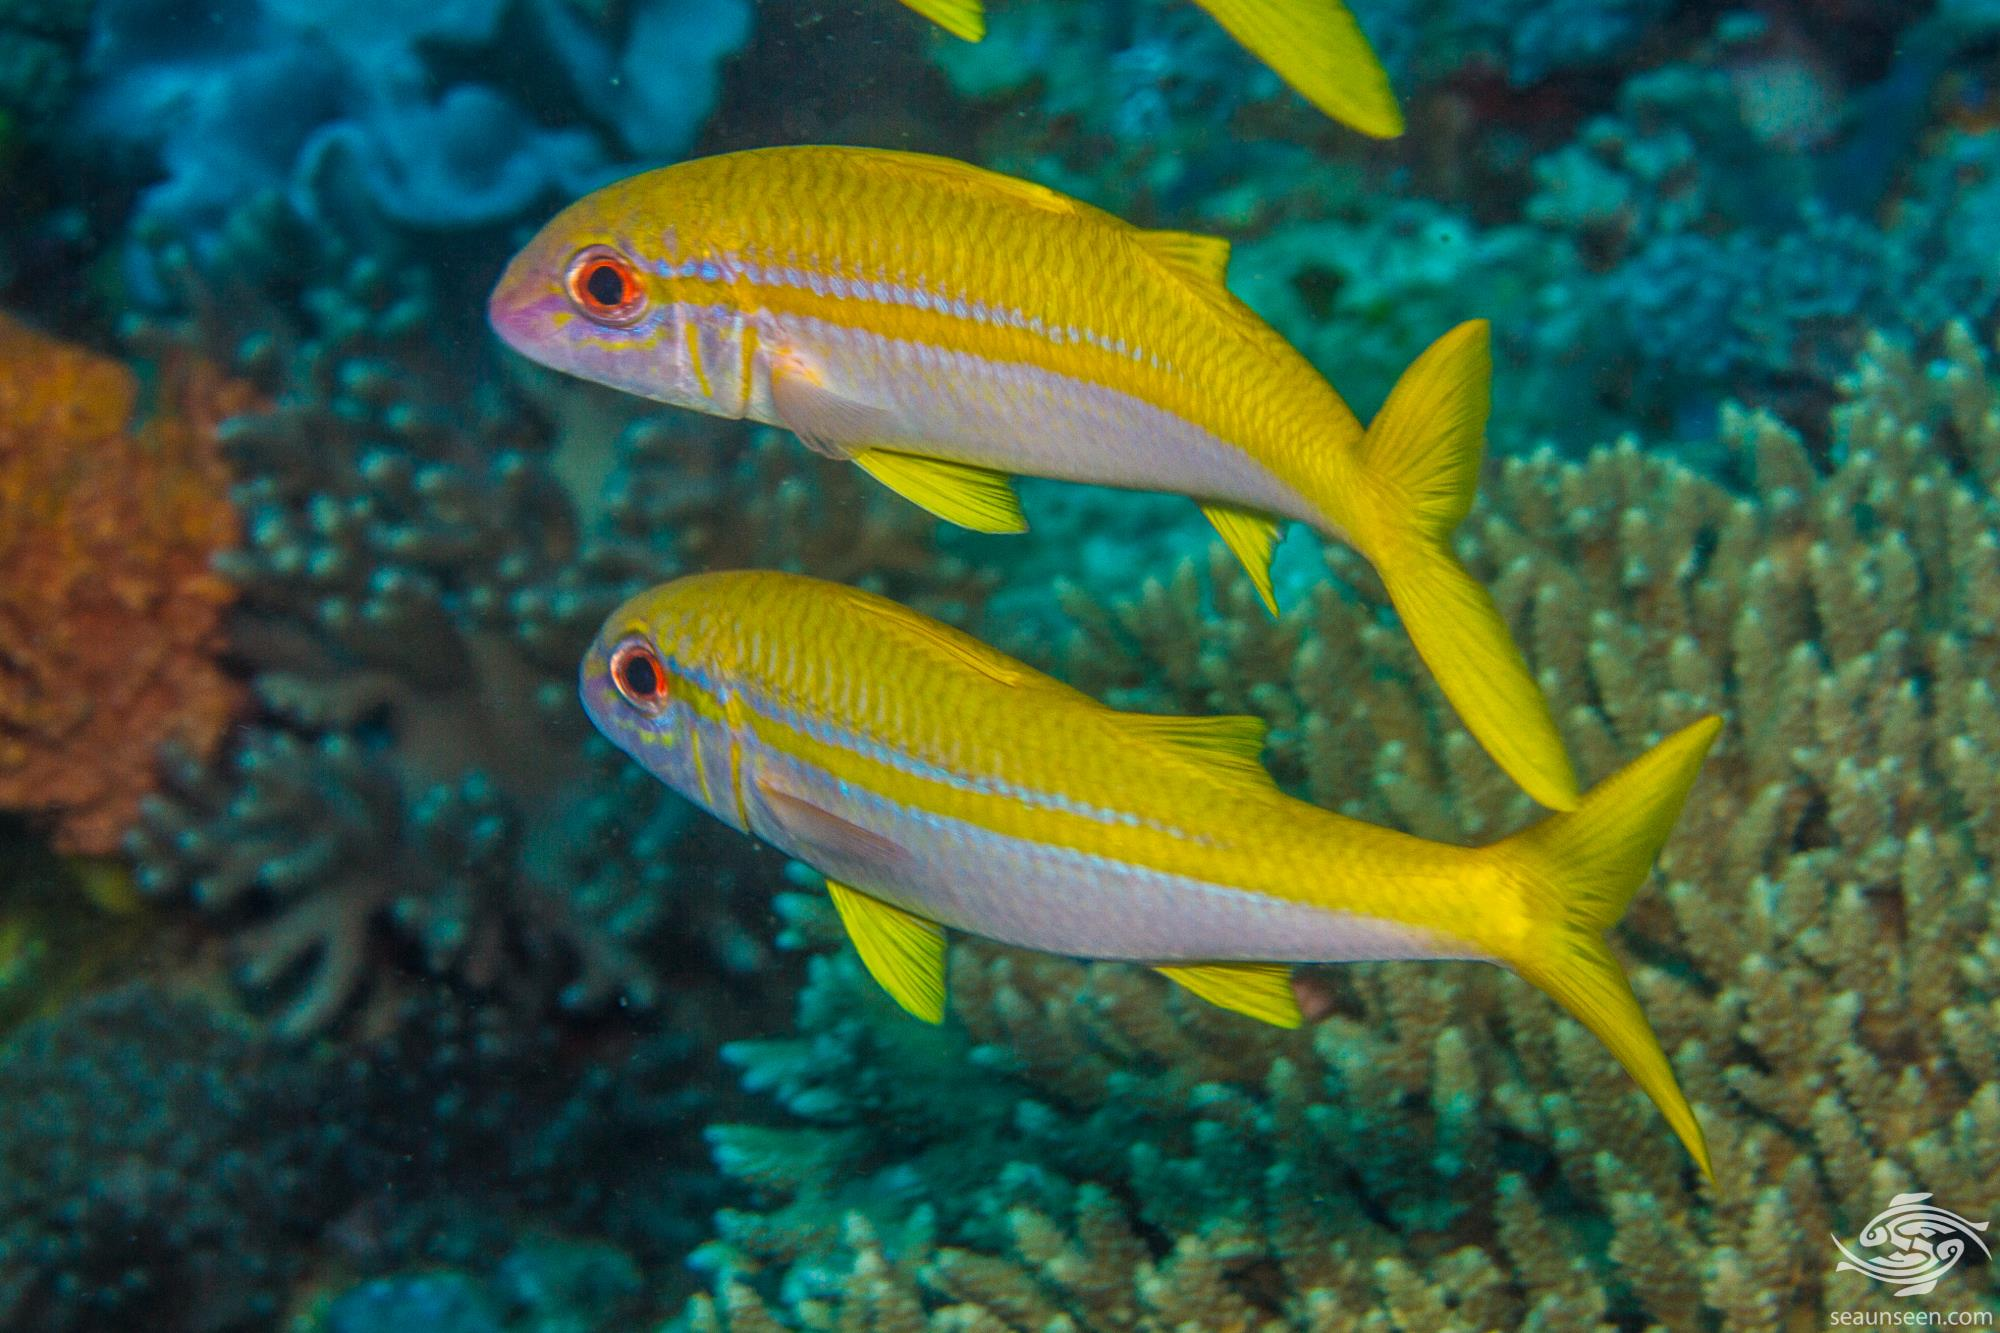 Yellowfin goatfish (Mulloidychtys vanicolensis) is also known as the Golden banded goatfish and the Goldstripe goatfish